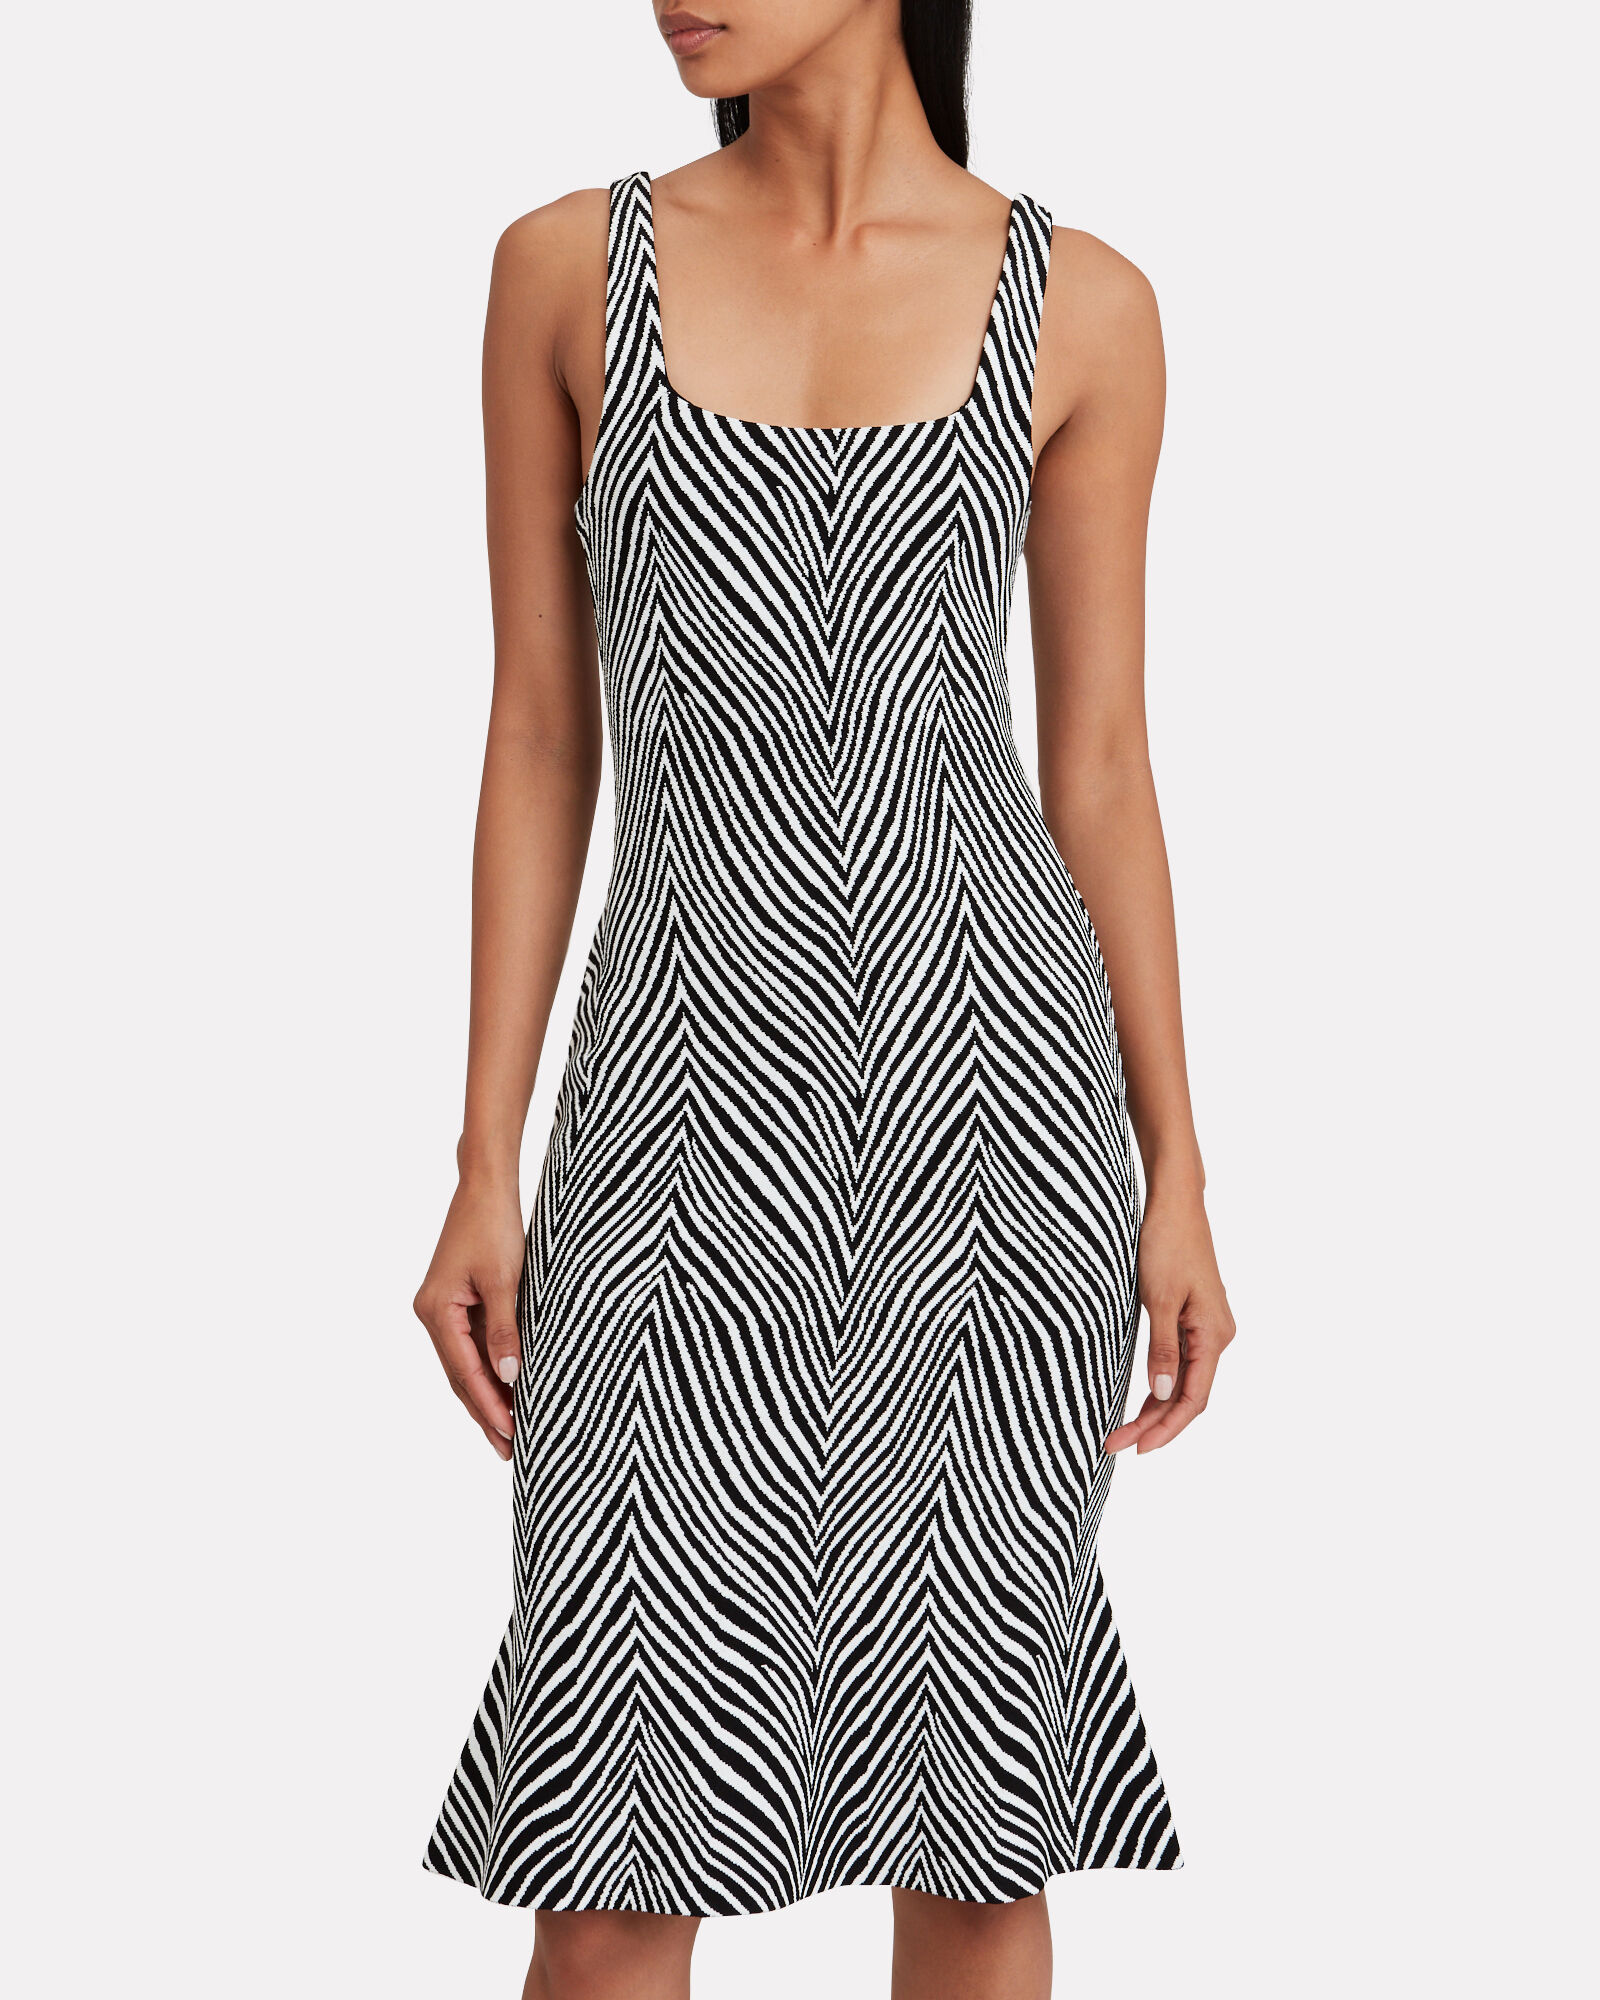 Shondra Zebra Knit Jacquard Dress, BLACK/WHITE, hi-res